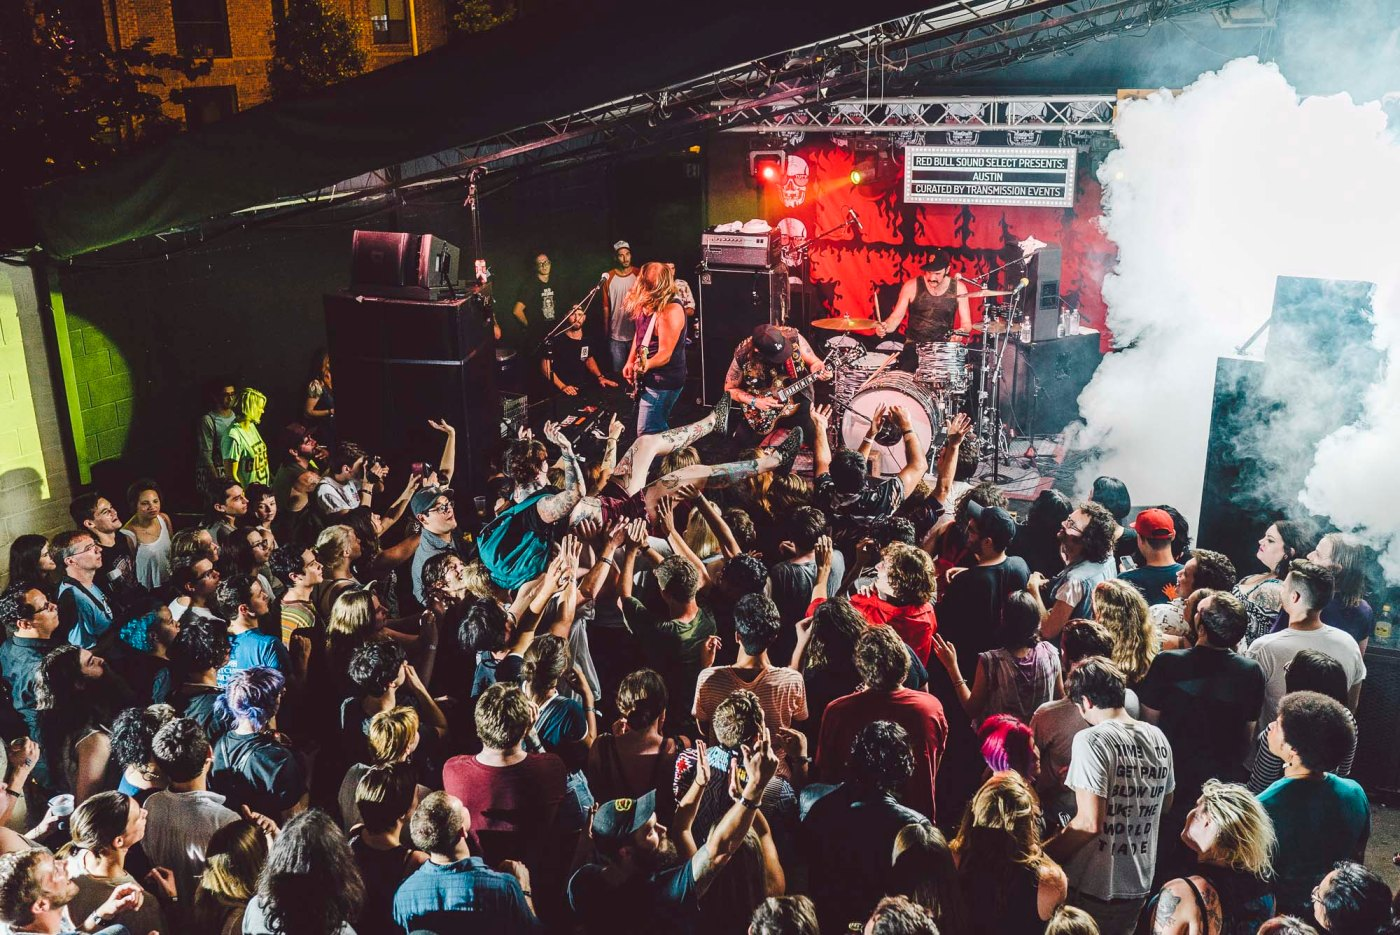 King Tuff performs at Red Bull Sound Select, in Austin, TX, USA, on 5 June, 2015.